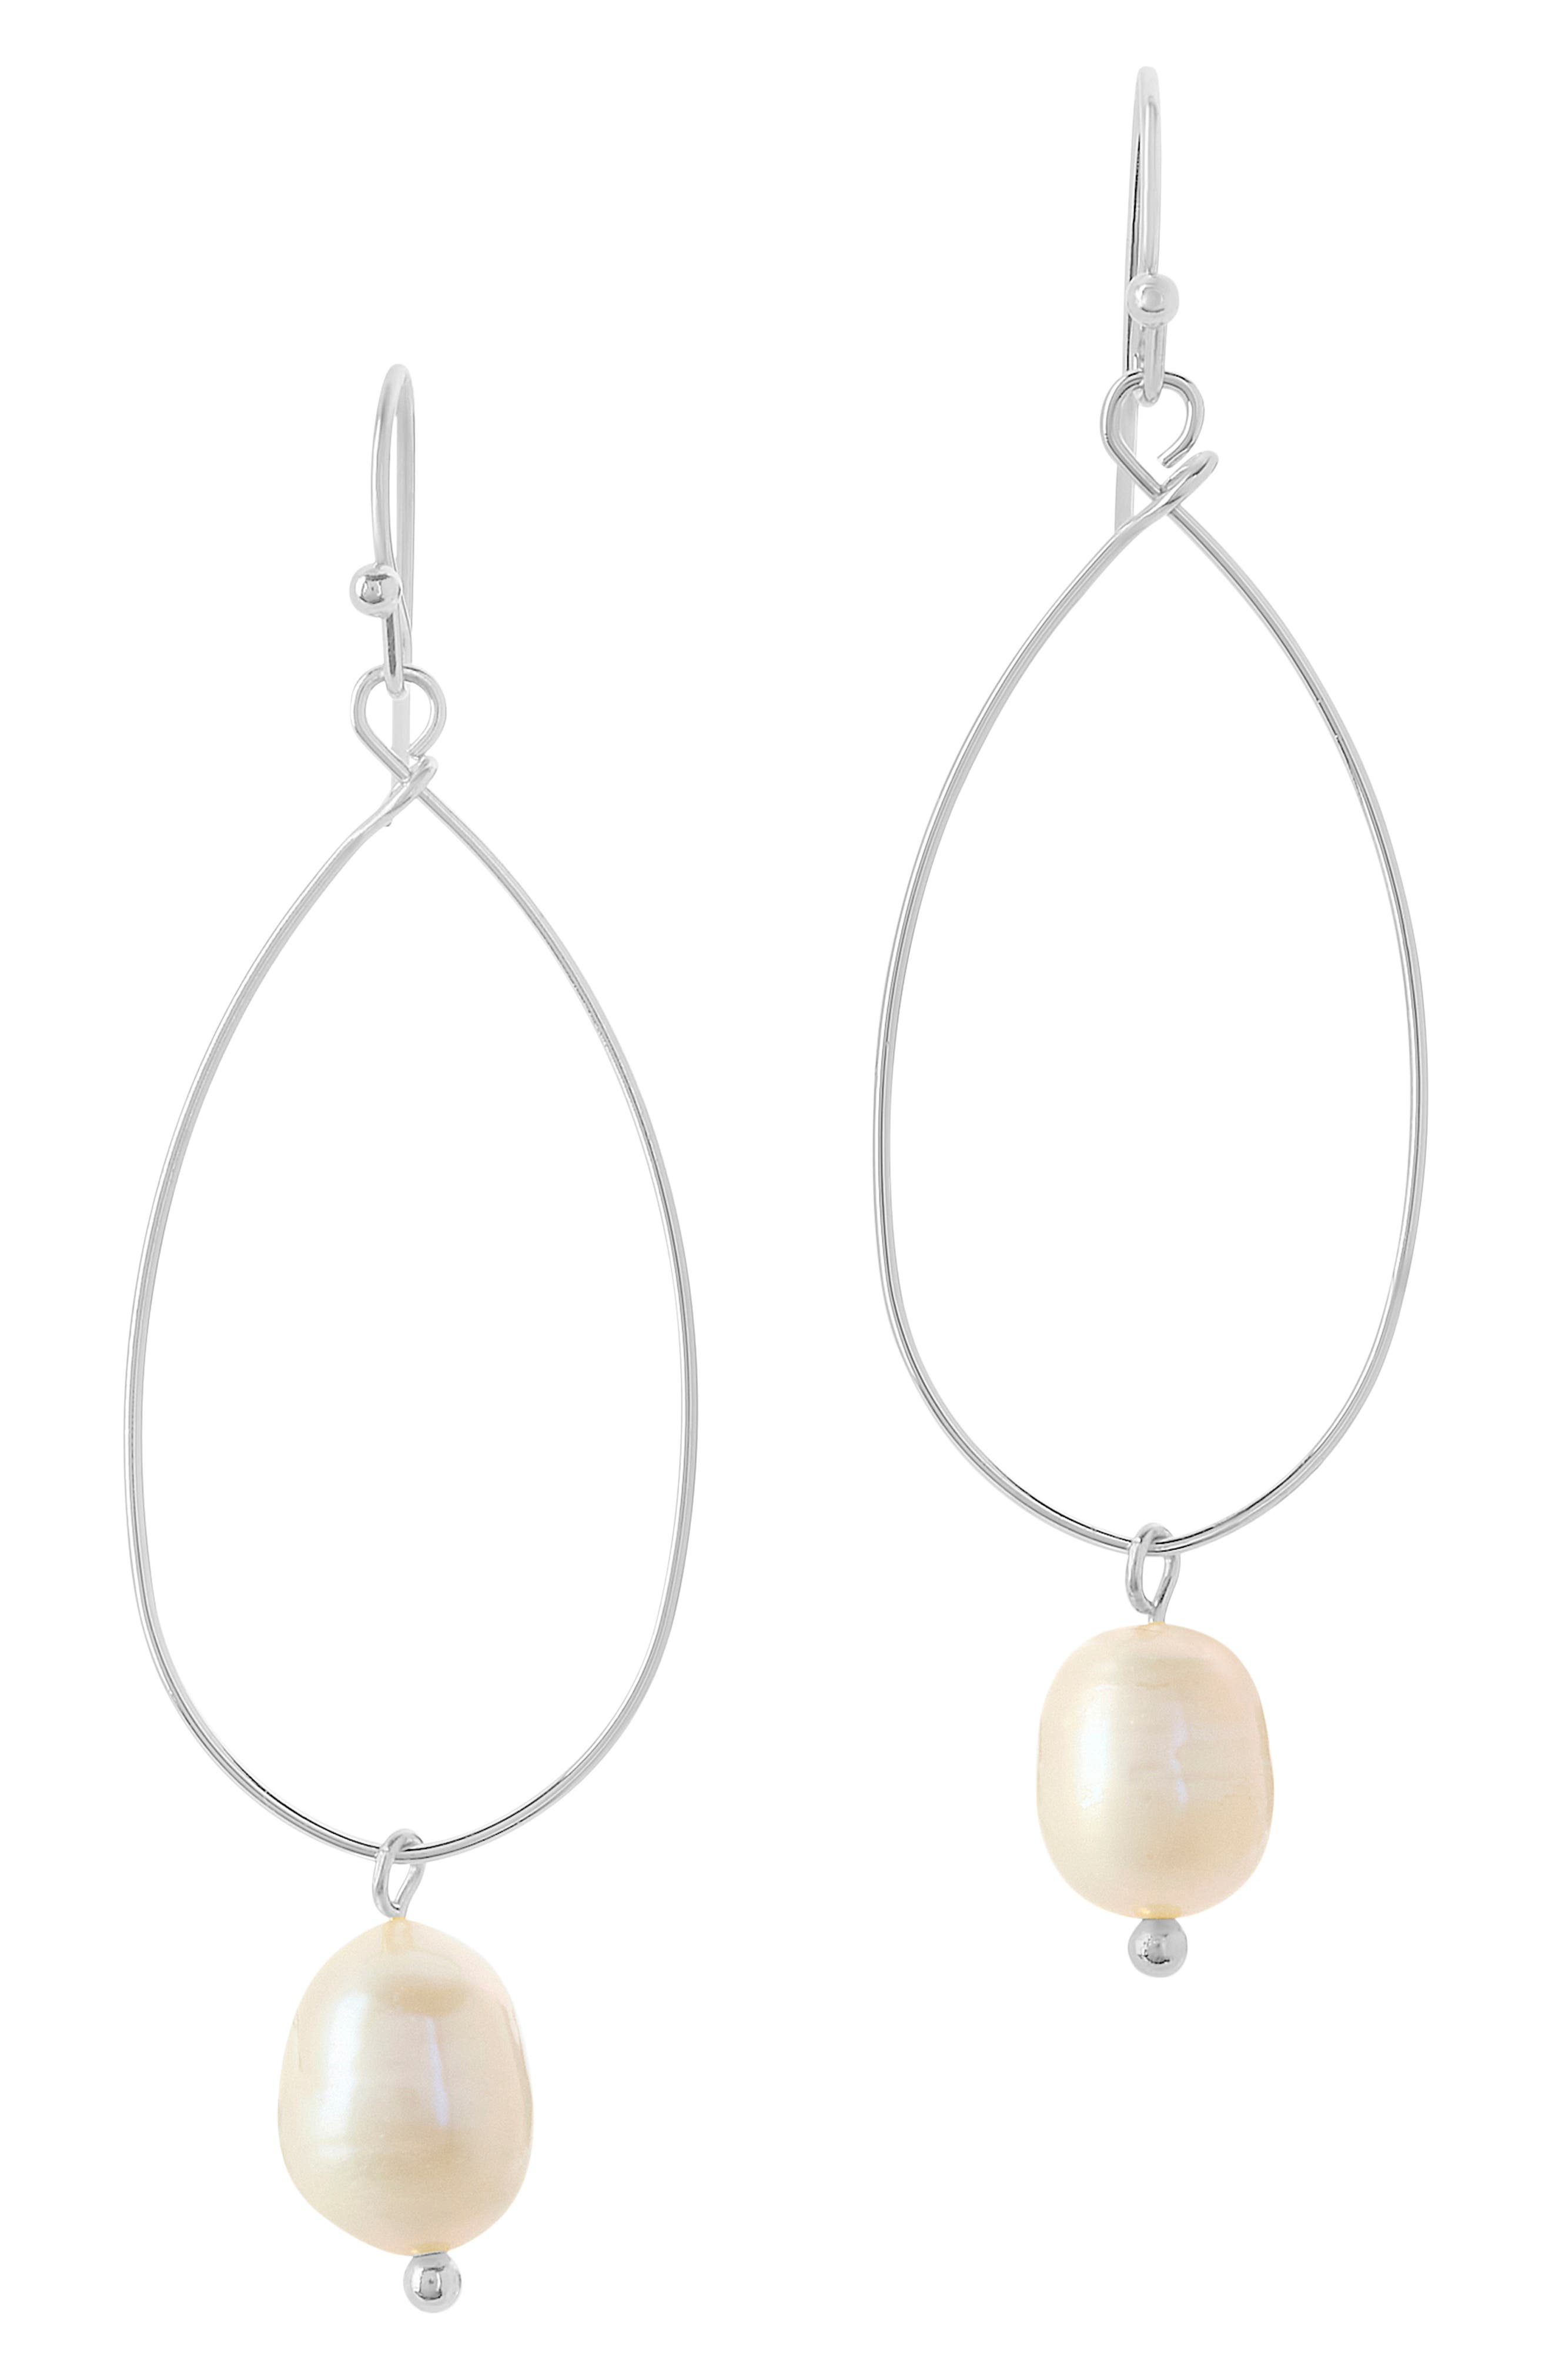 Single baroque pearls add a drop of luster to these delicate earrings crafted in an, airy open oval shape. Style Name: Sterling Forever Genuine Pearl Teardrop Earrings. Style Number: 6114458. Available in stores.